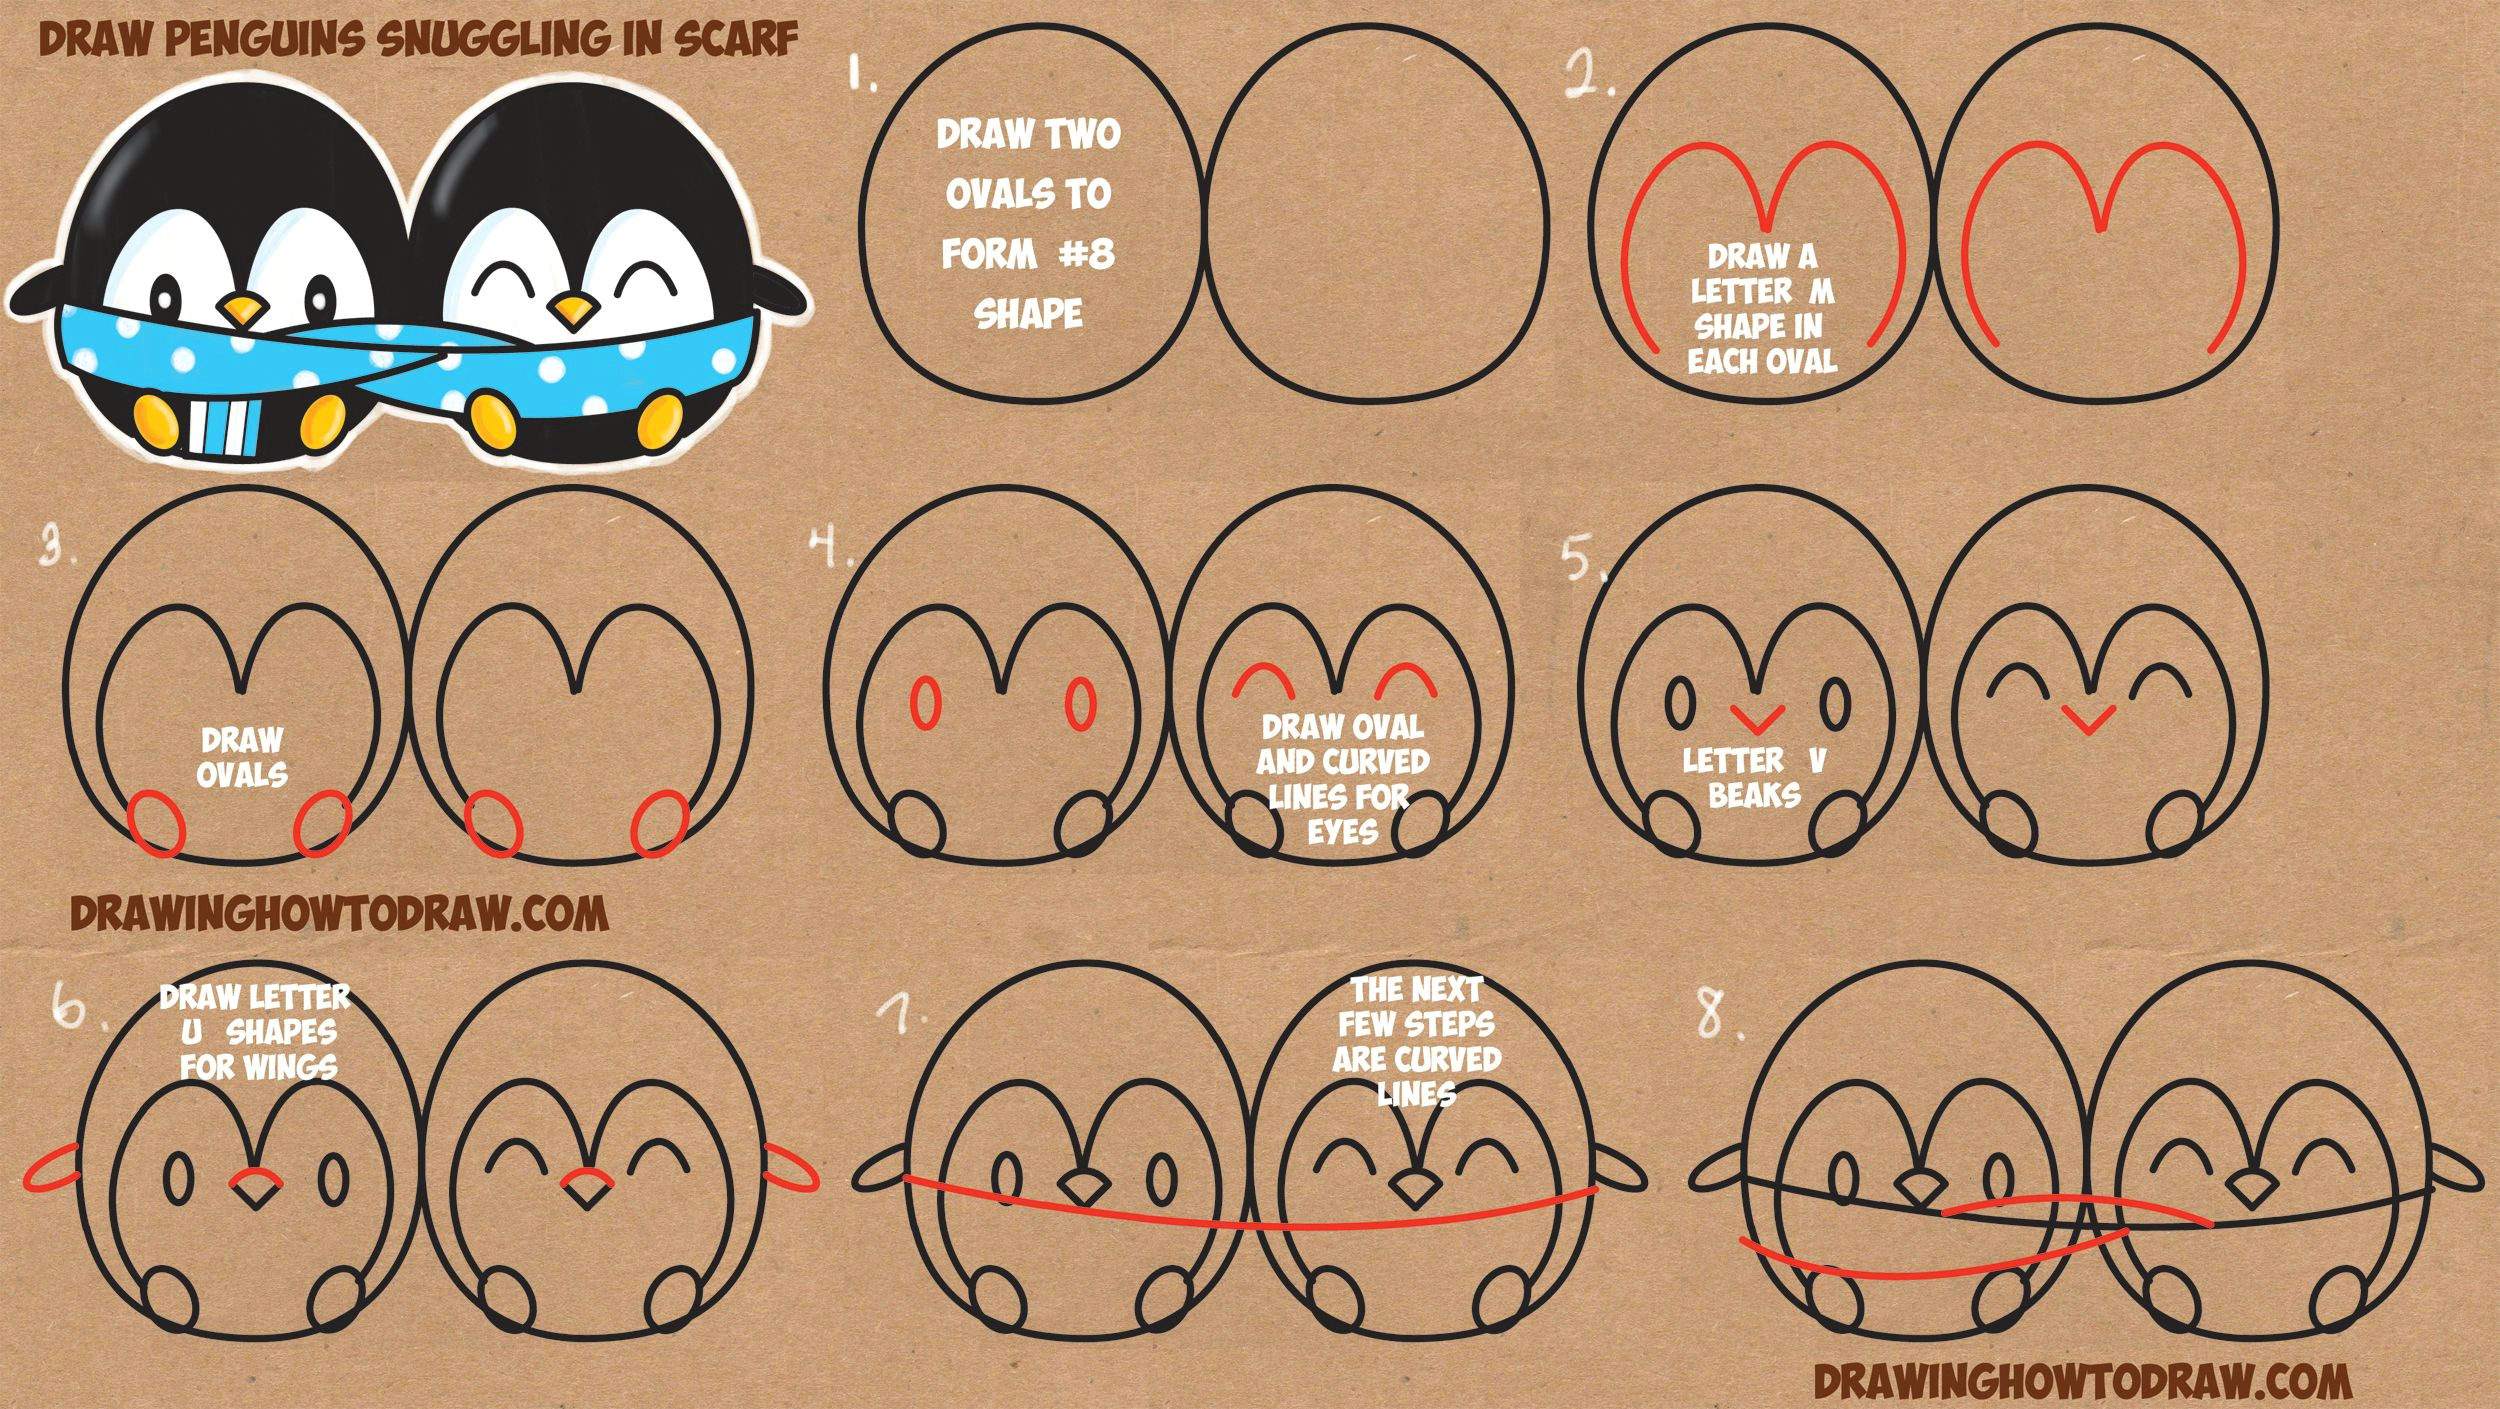 how to draw cute kawaii chibi cartoon penguins in a scarf for winter easy step by step drawing tutorial for kids